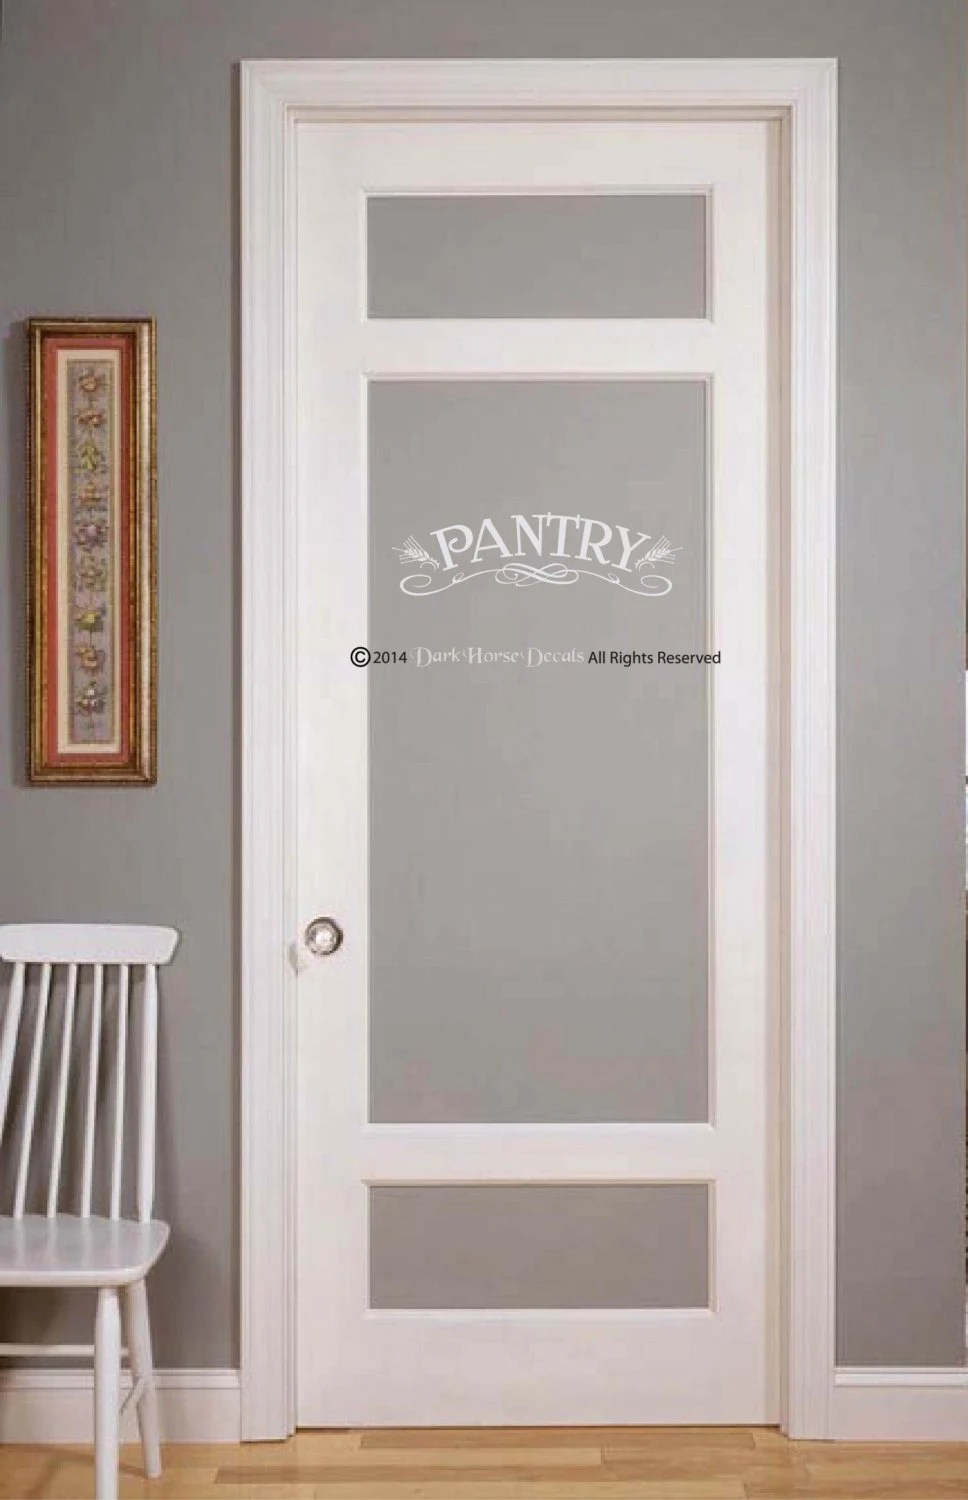 Pantry Decal For Wall Or Glass Door By DarkHorseDecals On Etsy